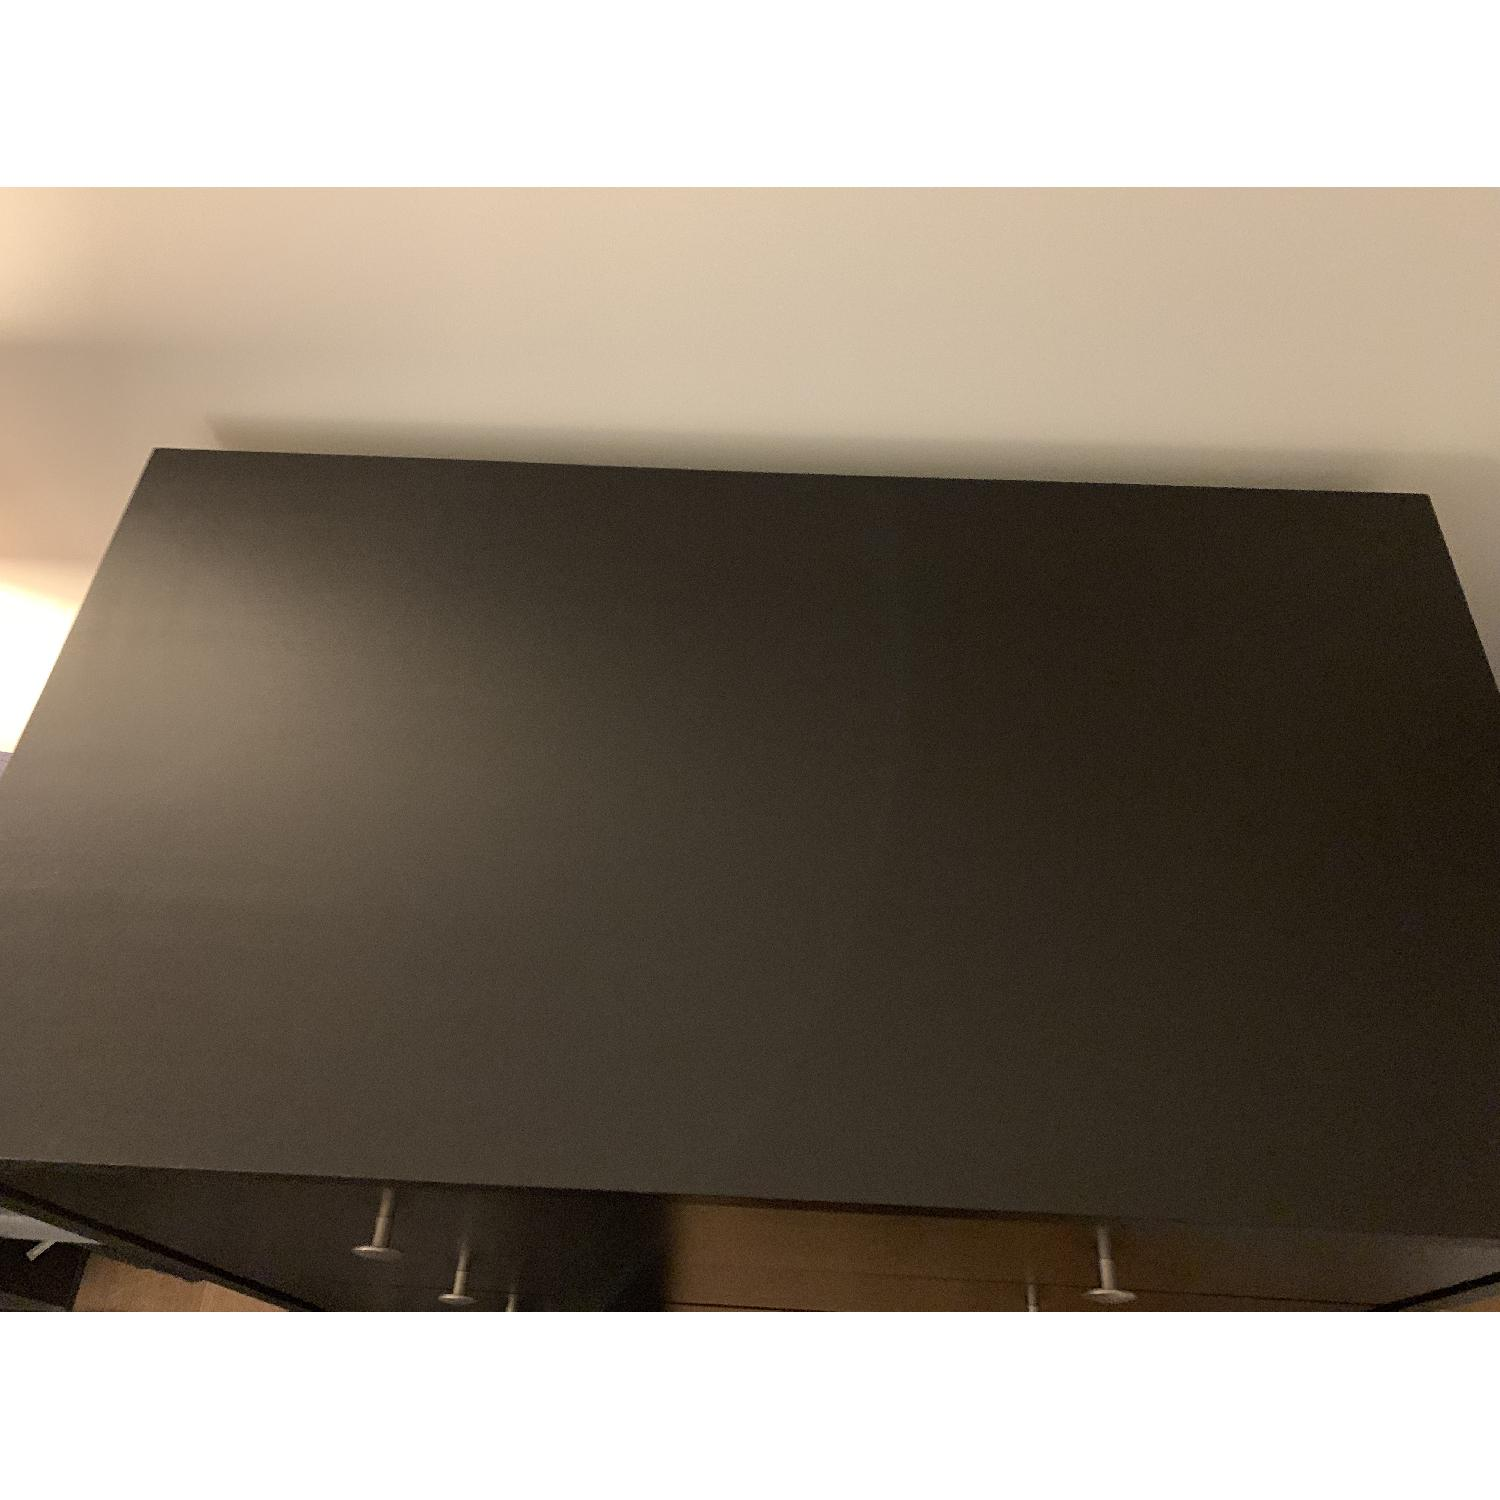 Crate & Barrel Black 4 Drawer Dresser-2